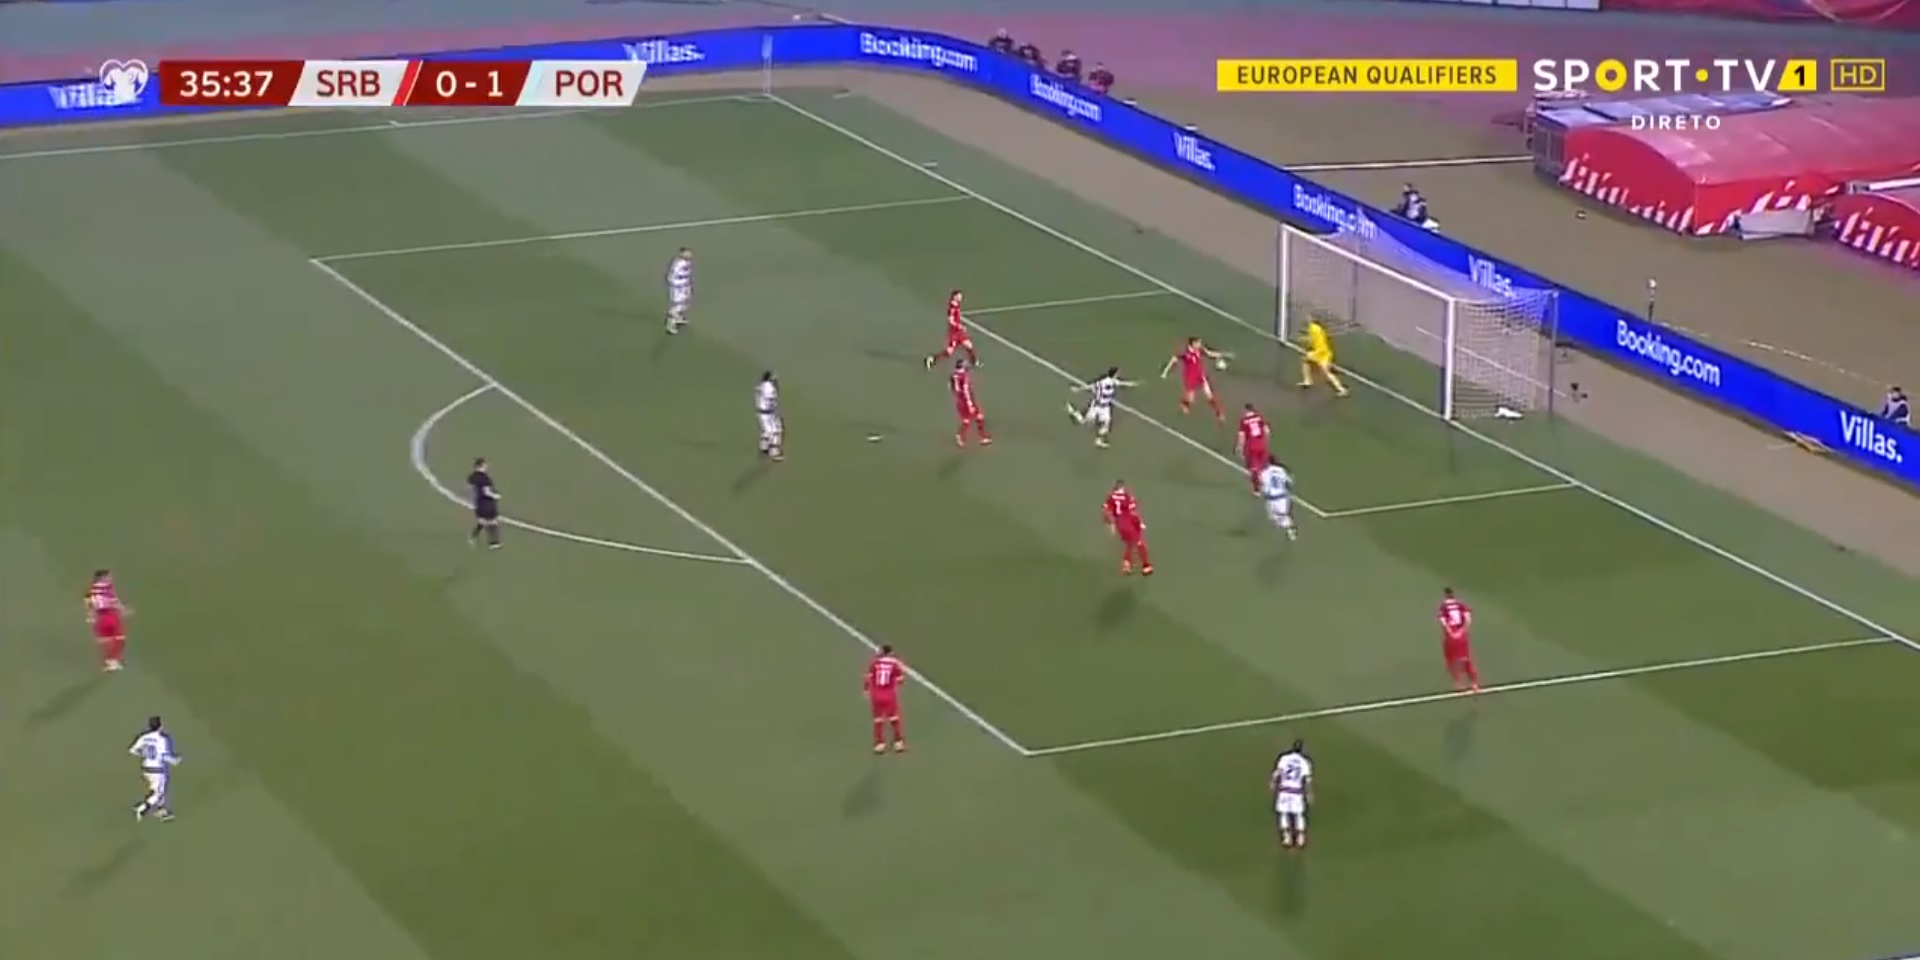 (Video) Diogo Jota nets twice with two brilliant headers in the space of 25 minutes to hand Portugal 2-0 lead